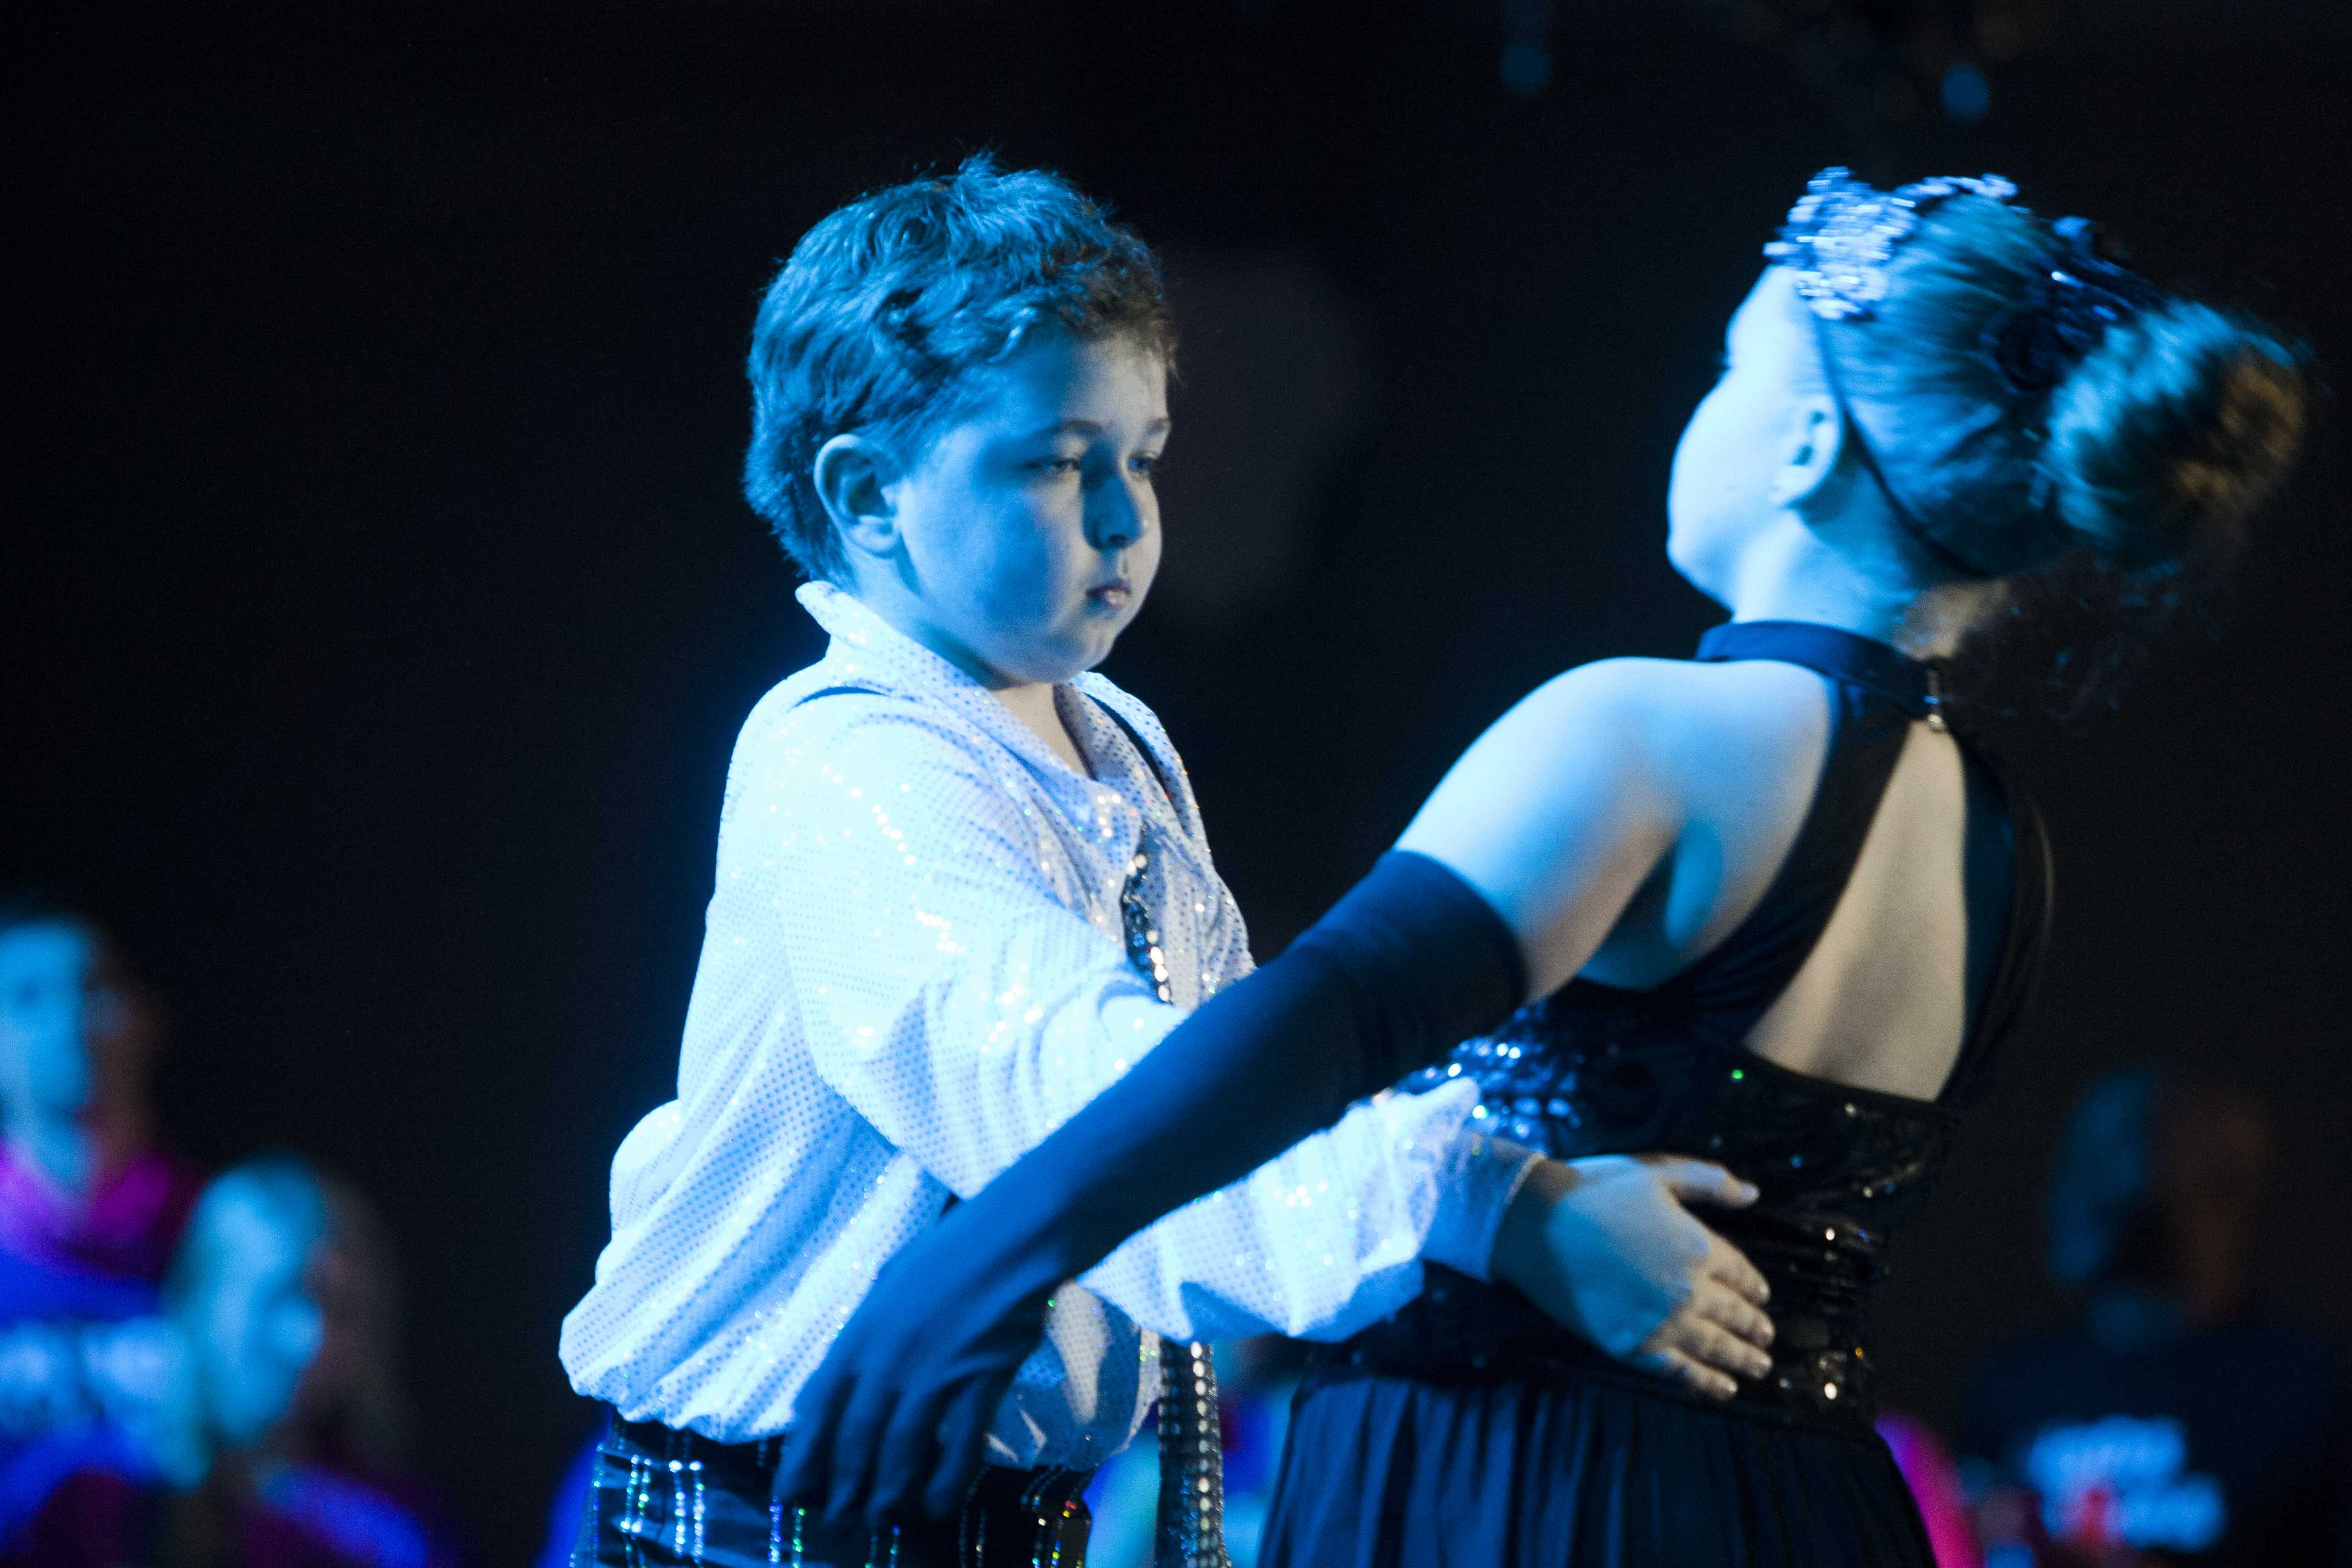 Molly and Joseph Burken perform during UI Dance Marathon 24 at the IMU on Saturday, Feb. 3, 2018. Joseph was diagnosed with a brain tumor at age 5. (Shivansh Ahuja/The Daily Iowan)